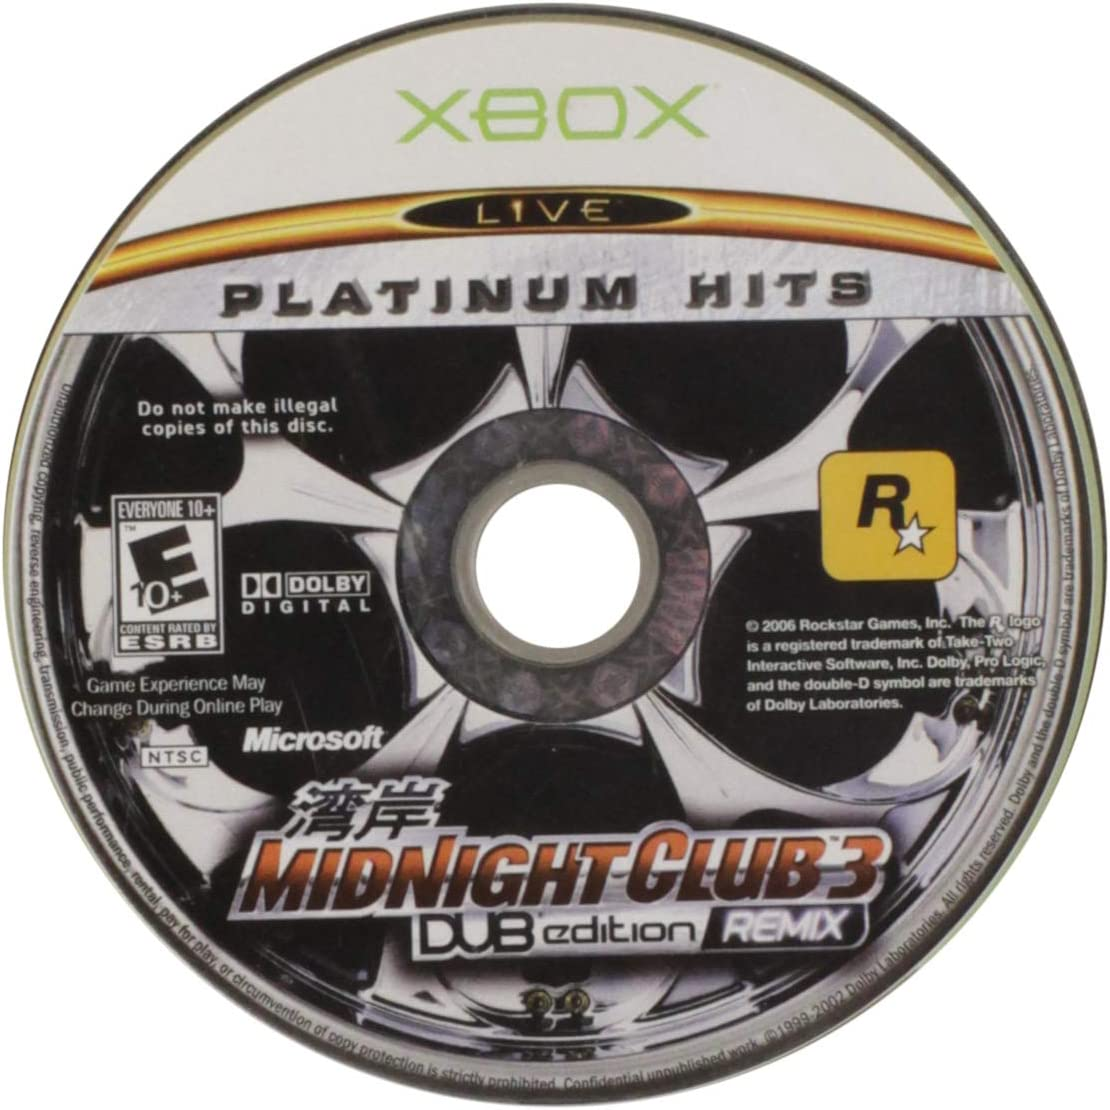 cheat midnight club 3 dub edition remix ps2 money